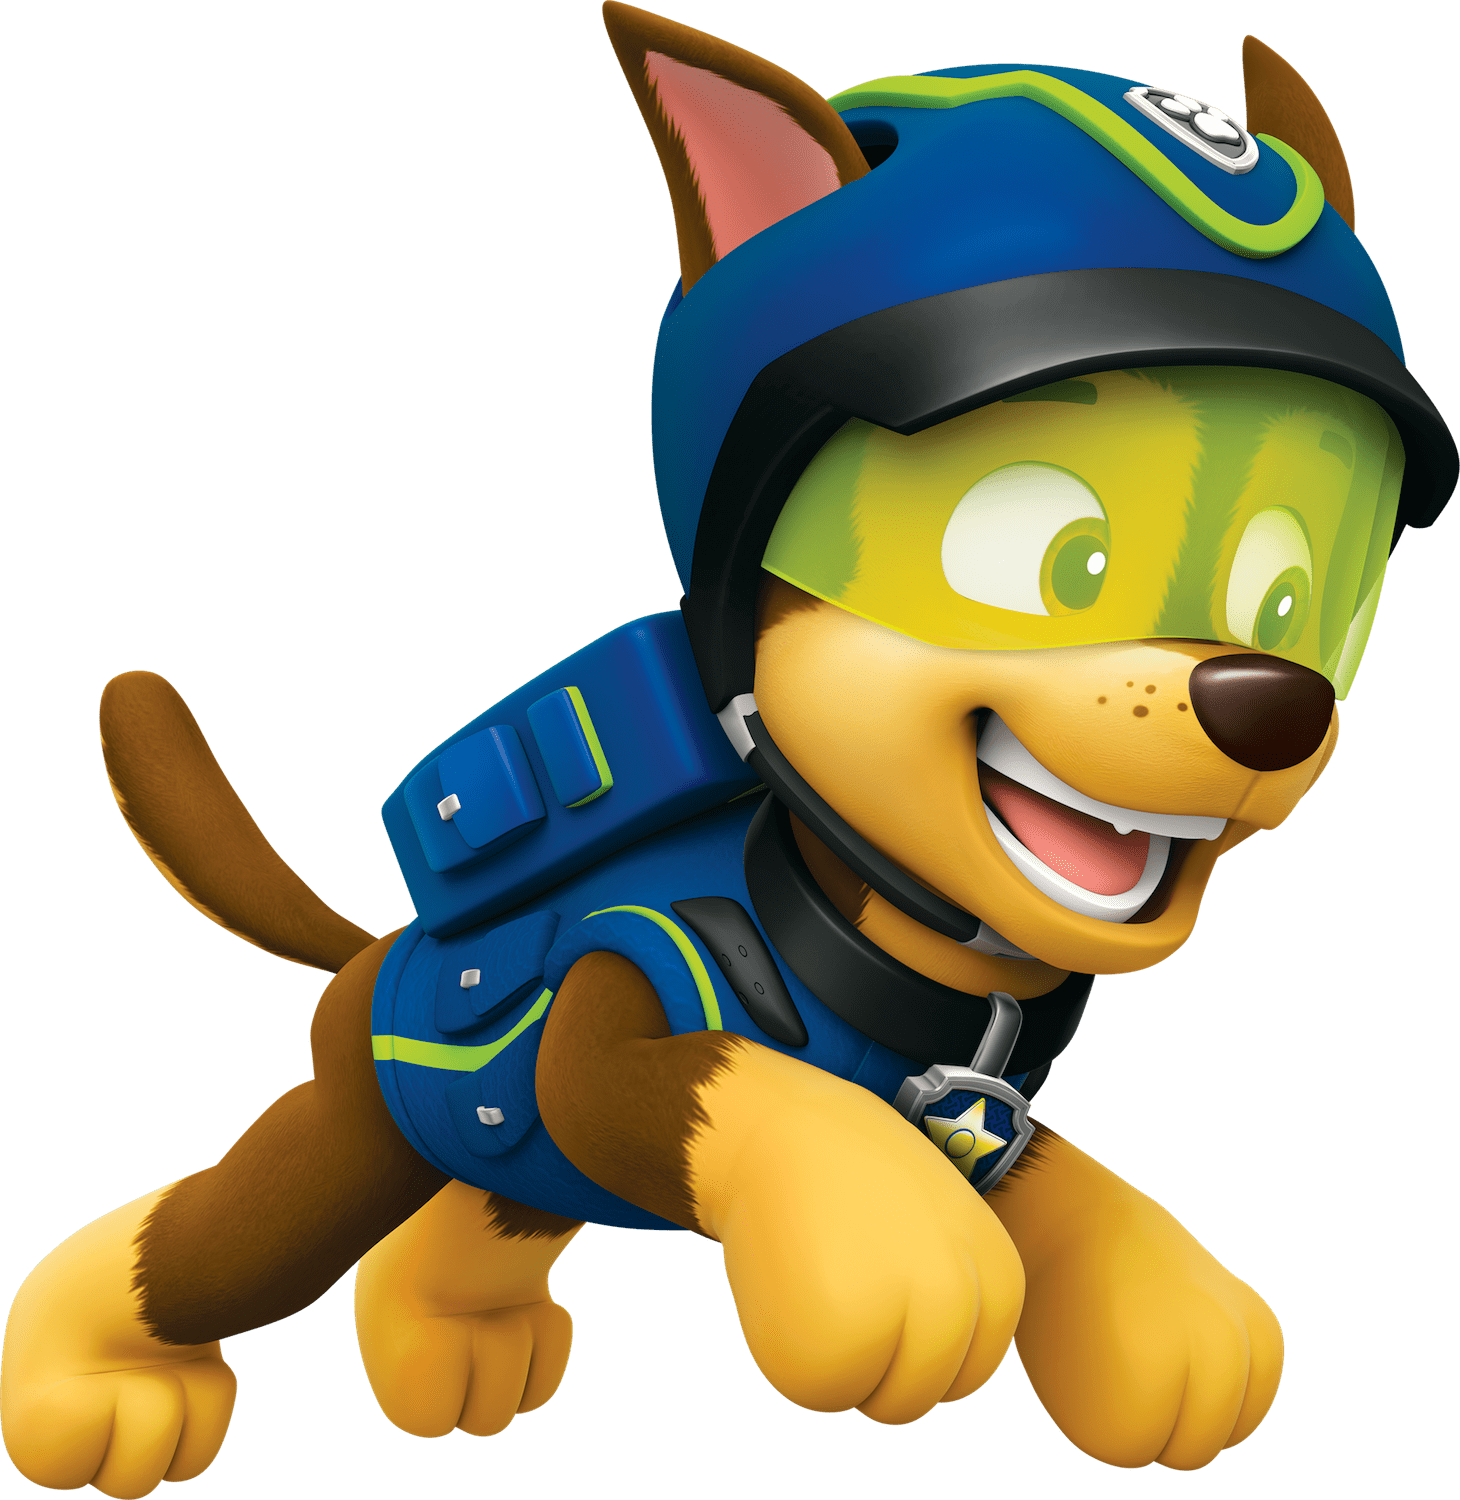 Paw patrol clipart chase clipart free library Chase Jump Paw Patrol Clipart Png clipart free library